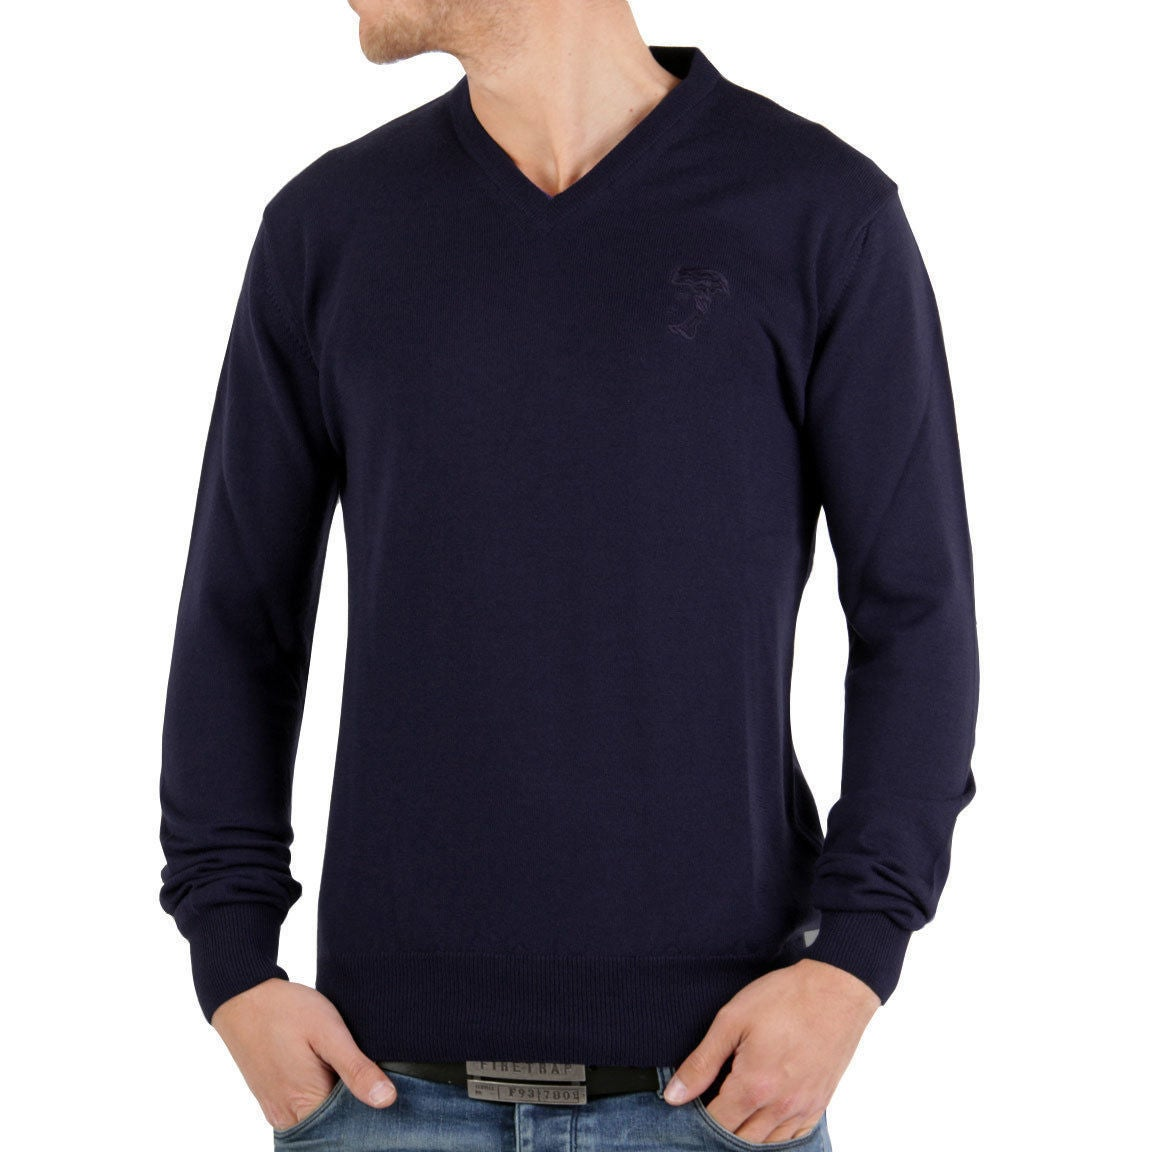 reputable site a4b34 375b2 Versace Collection Navy V-neck Wool Sweater